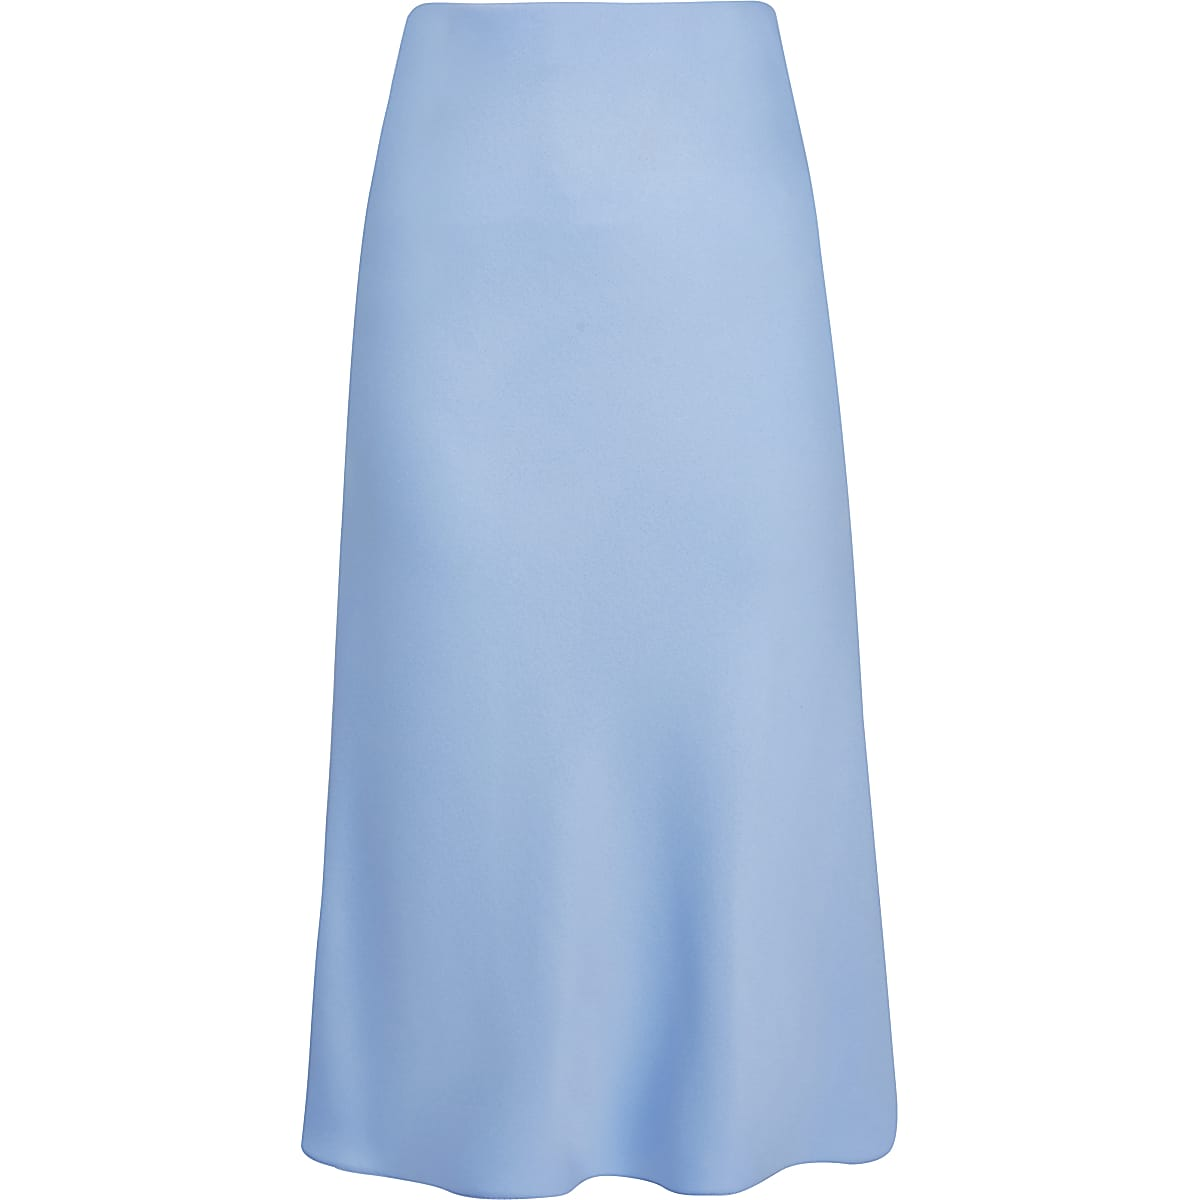 a60fa31ed5 Light blue bias cut midi skirt - Midi Skirts - Skirts - women